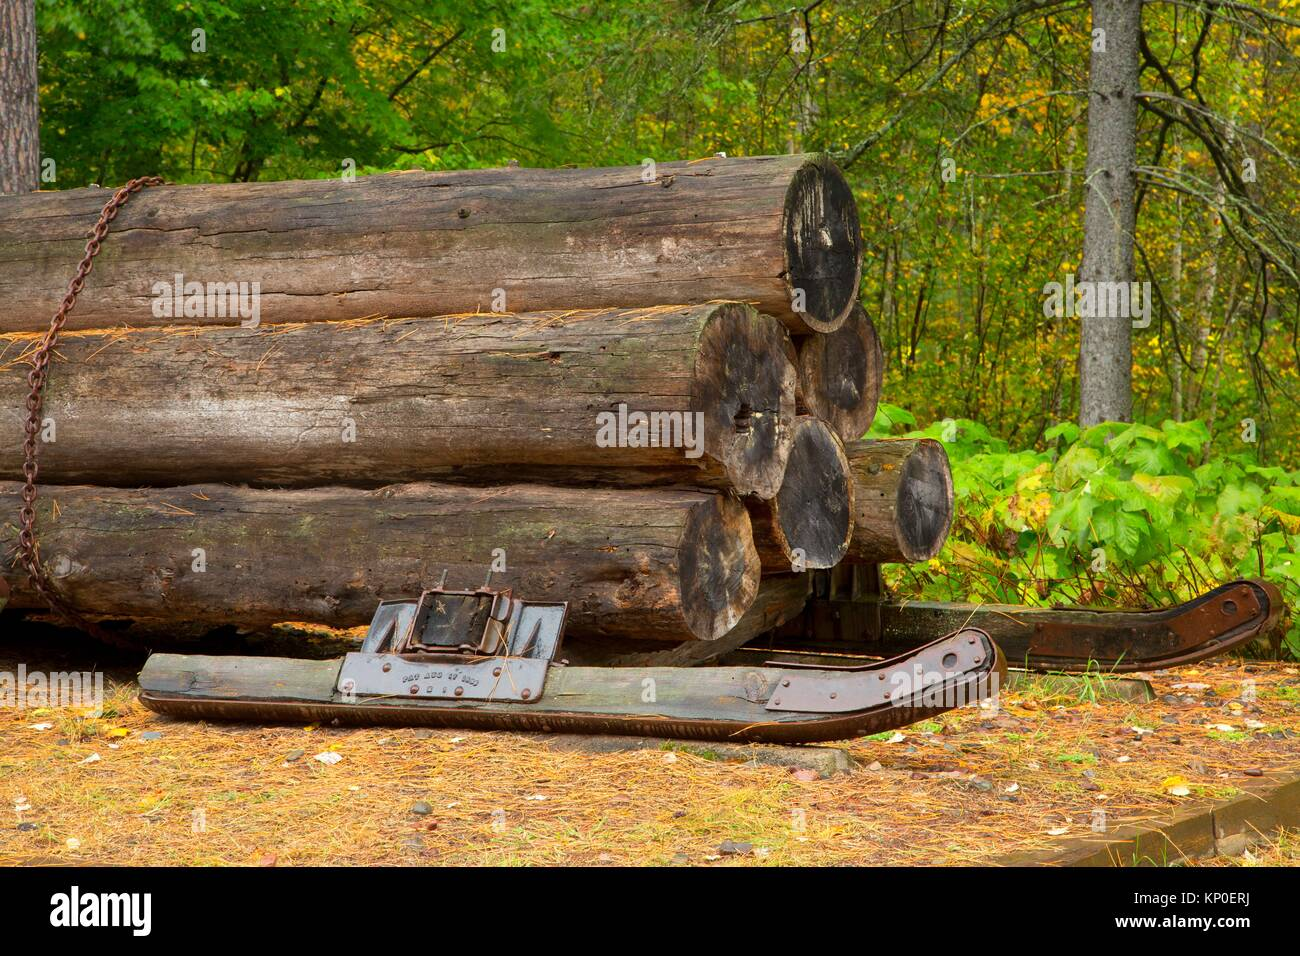 Log sled, Brule River State Forest, Wisconsin. - Stock Image